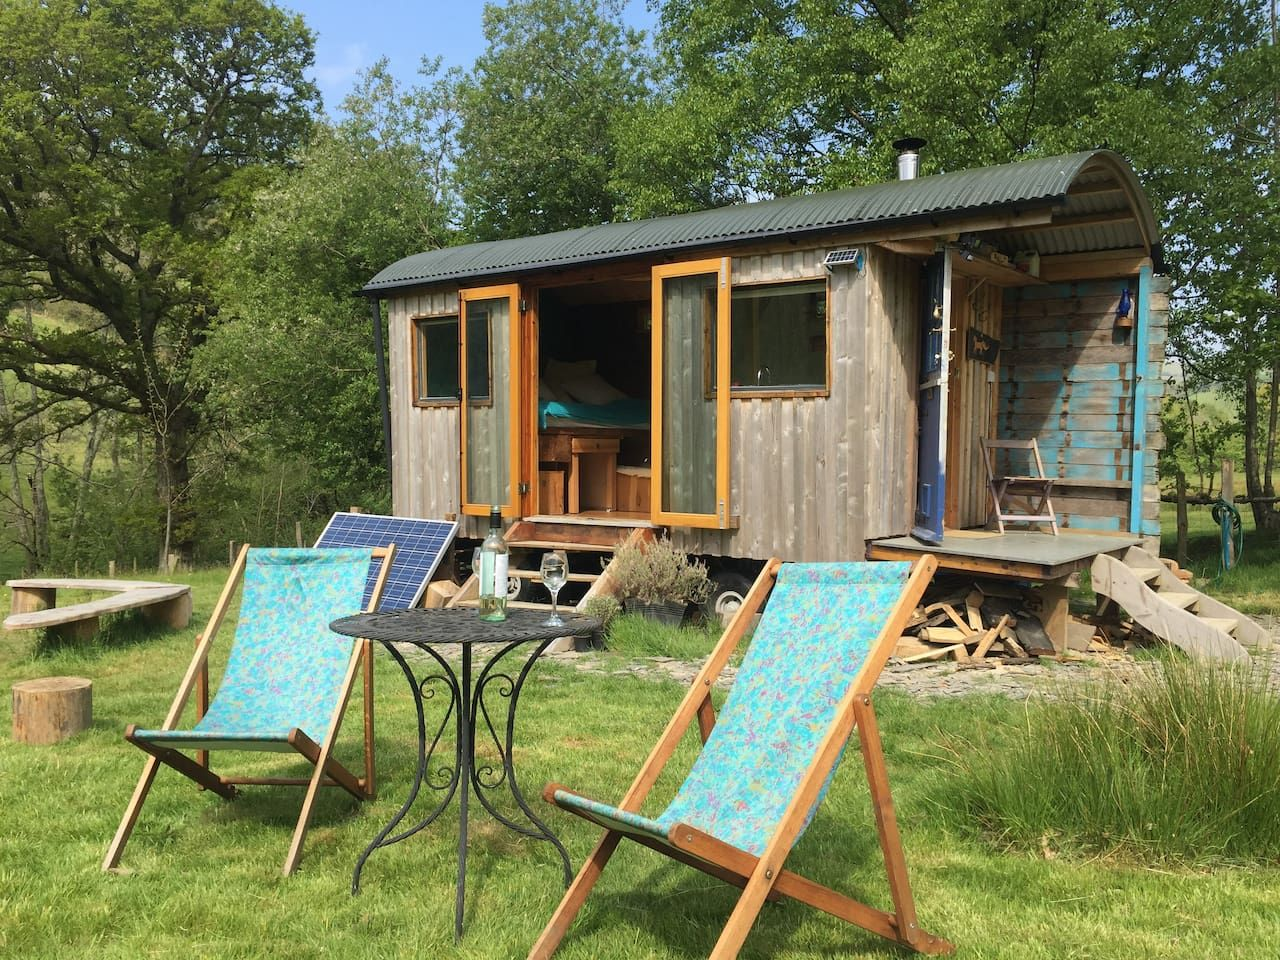 Eco-retreat with private field (ideal for dogs) - Cabins ... on Kingdom Outdoor Living id=74709